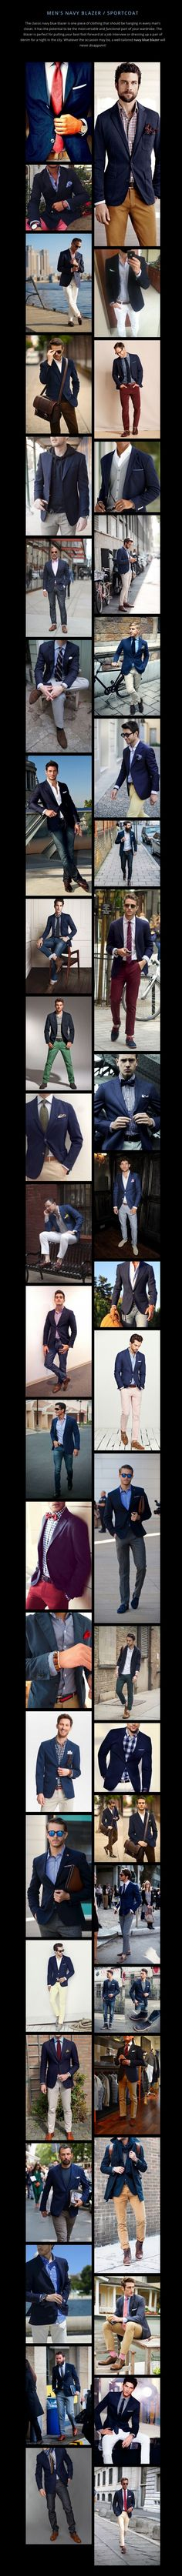 Kinds of Urban Look T-shirt – World Trends Fashion Navy Blazer Outfits, Navy Blazer Men, Navy Blazers, Mens Fashion Blazer, Outfits Hombre, Blazers For Men, Suit Fashion, Navy Chinos, Fashion Mode